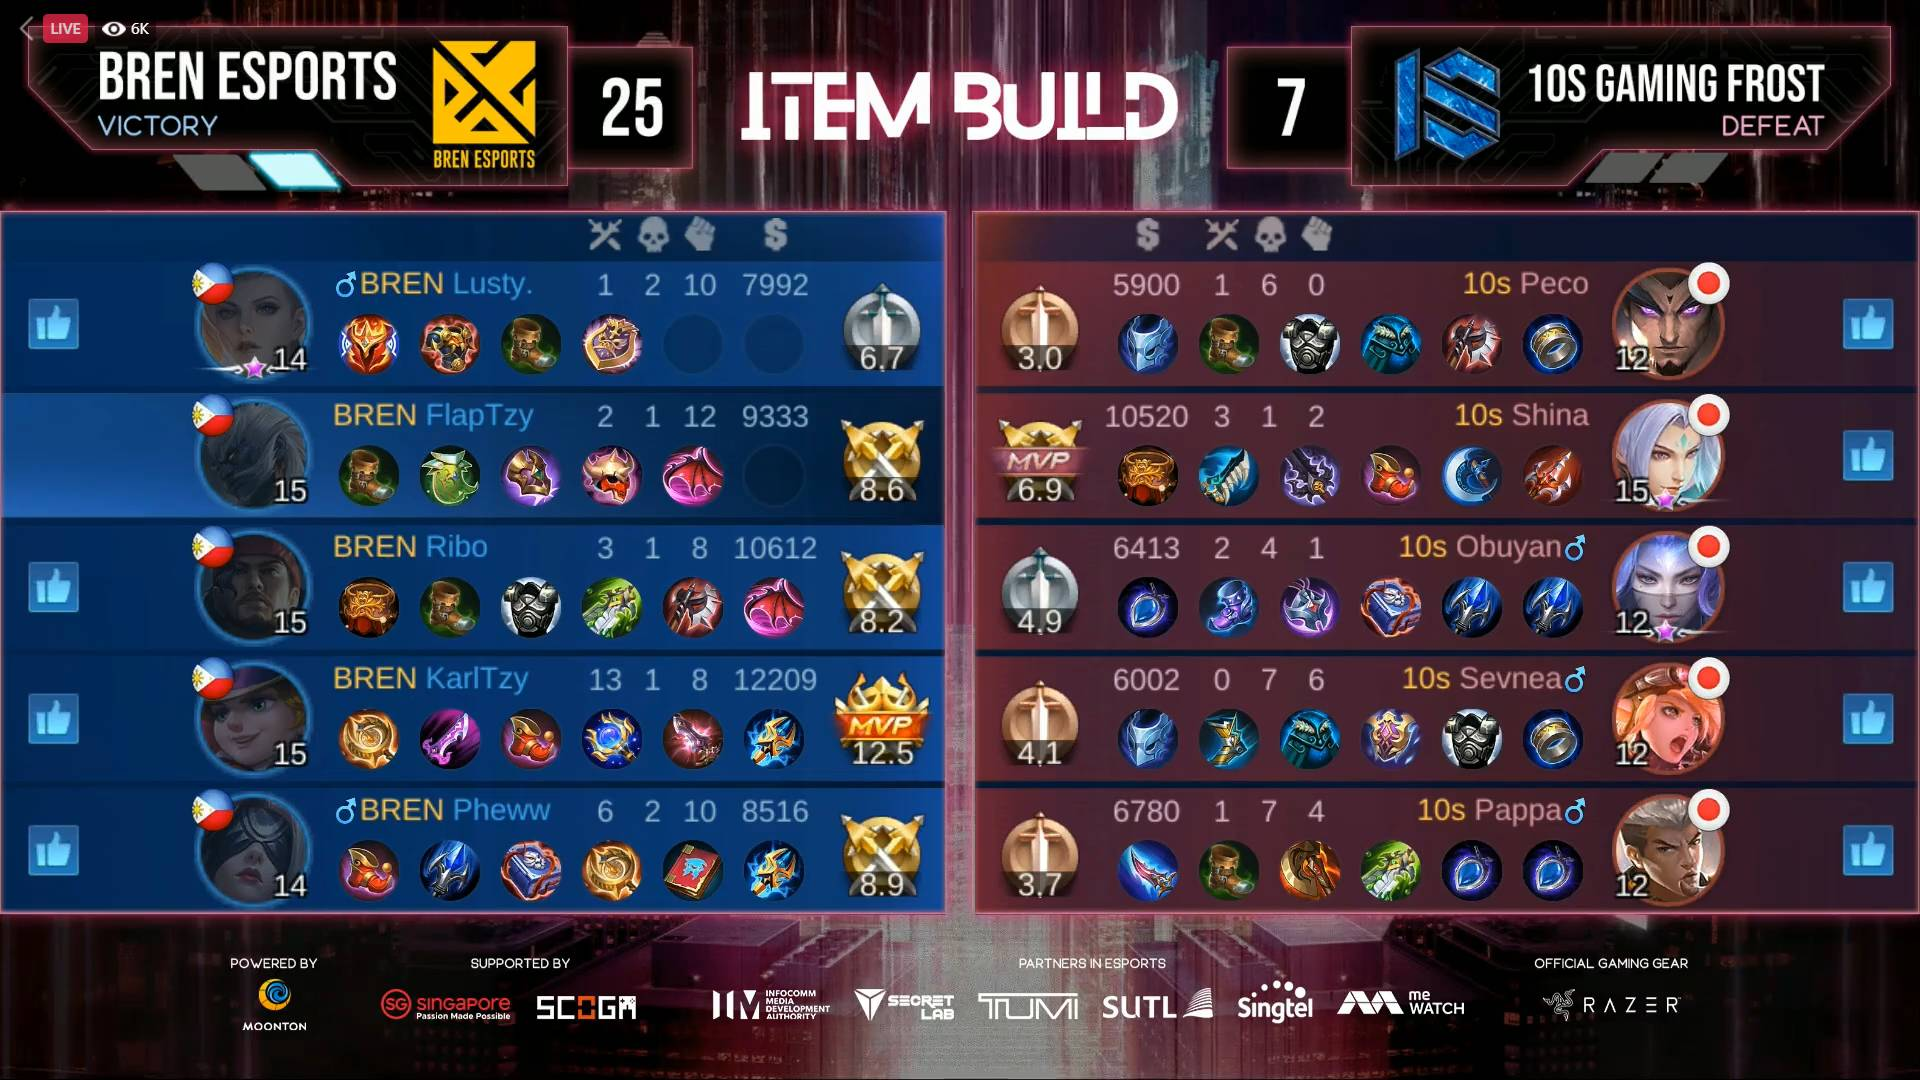 2021-M2-World-Championship-BREN-def-1os-Game-One KarlTzy's savage highlights BREN Esports sweep of 10S in M2 ESports Mobile Legends MPL-PH News  - philippine sports news